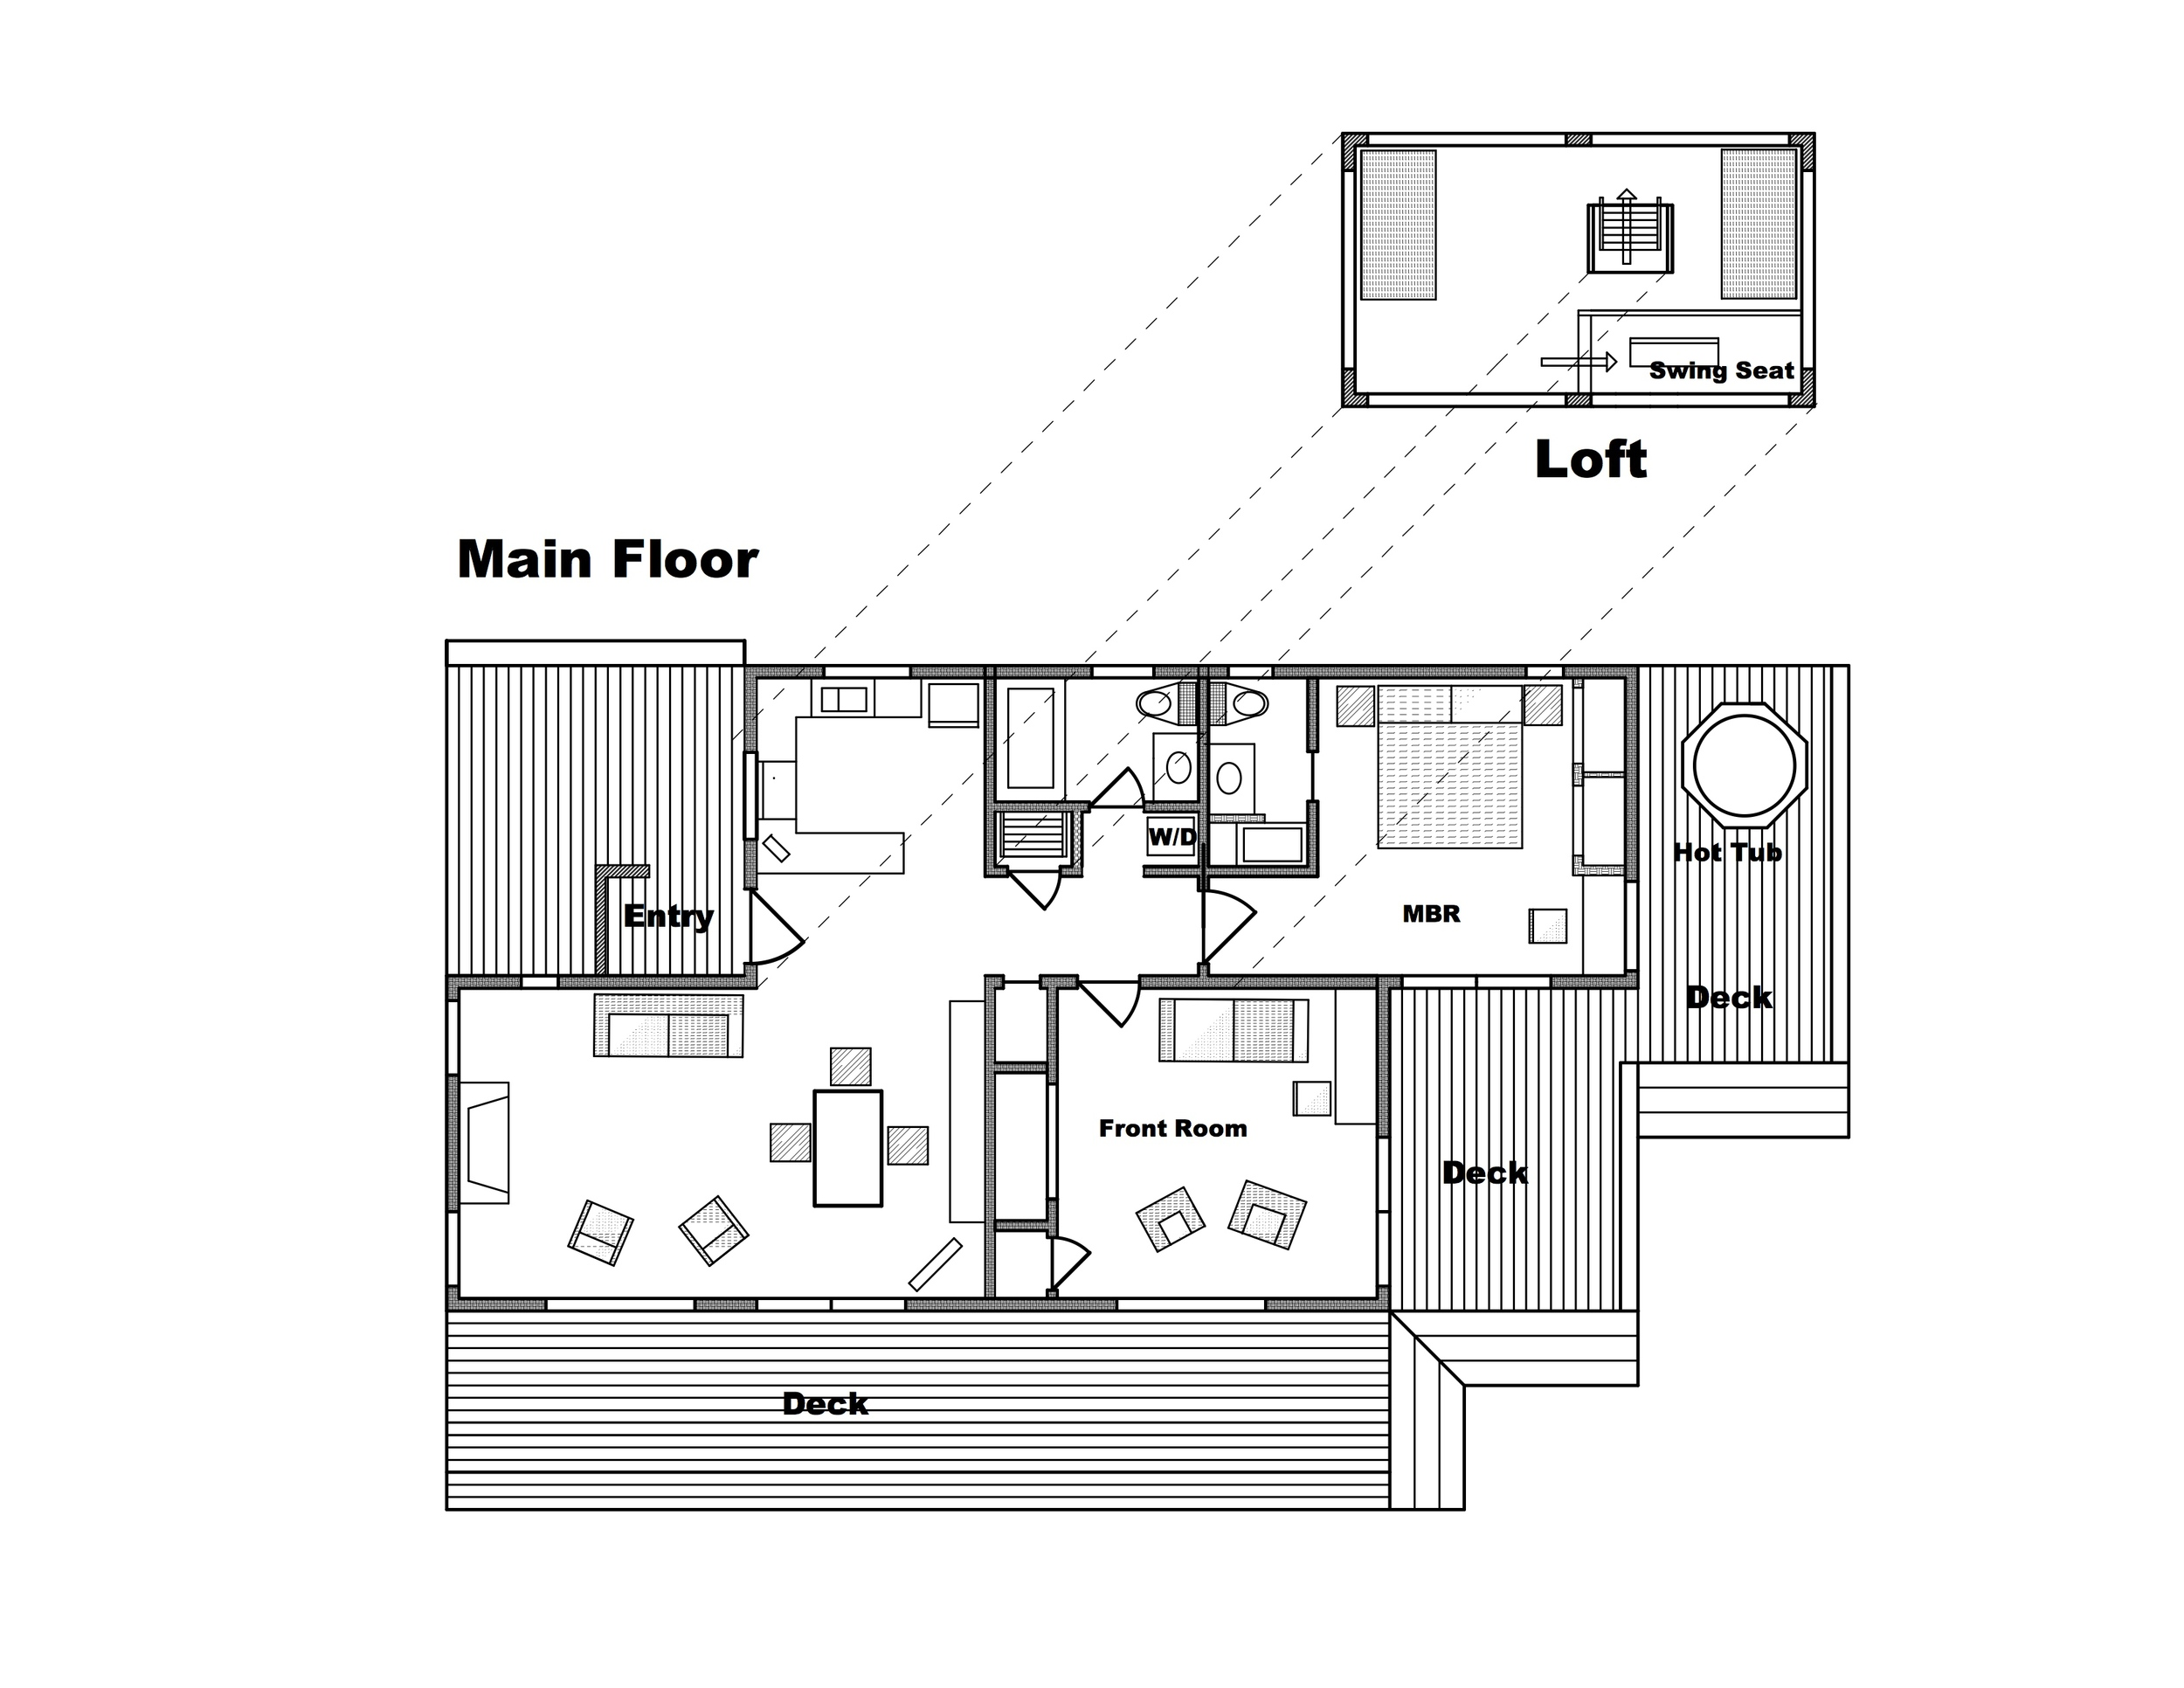 Floor plan of Casa Pacis. A detached garage/annex building on the NE side of the property is not shown. The loft is unlocked but is not a sleeping area for renters. The detached garage (not shown) is accessible to renters for storage; but the rest of that annex is excluded from the rented space and remains vacant during rental periods.